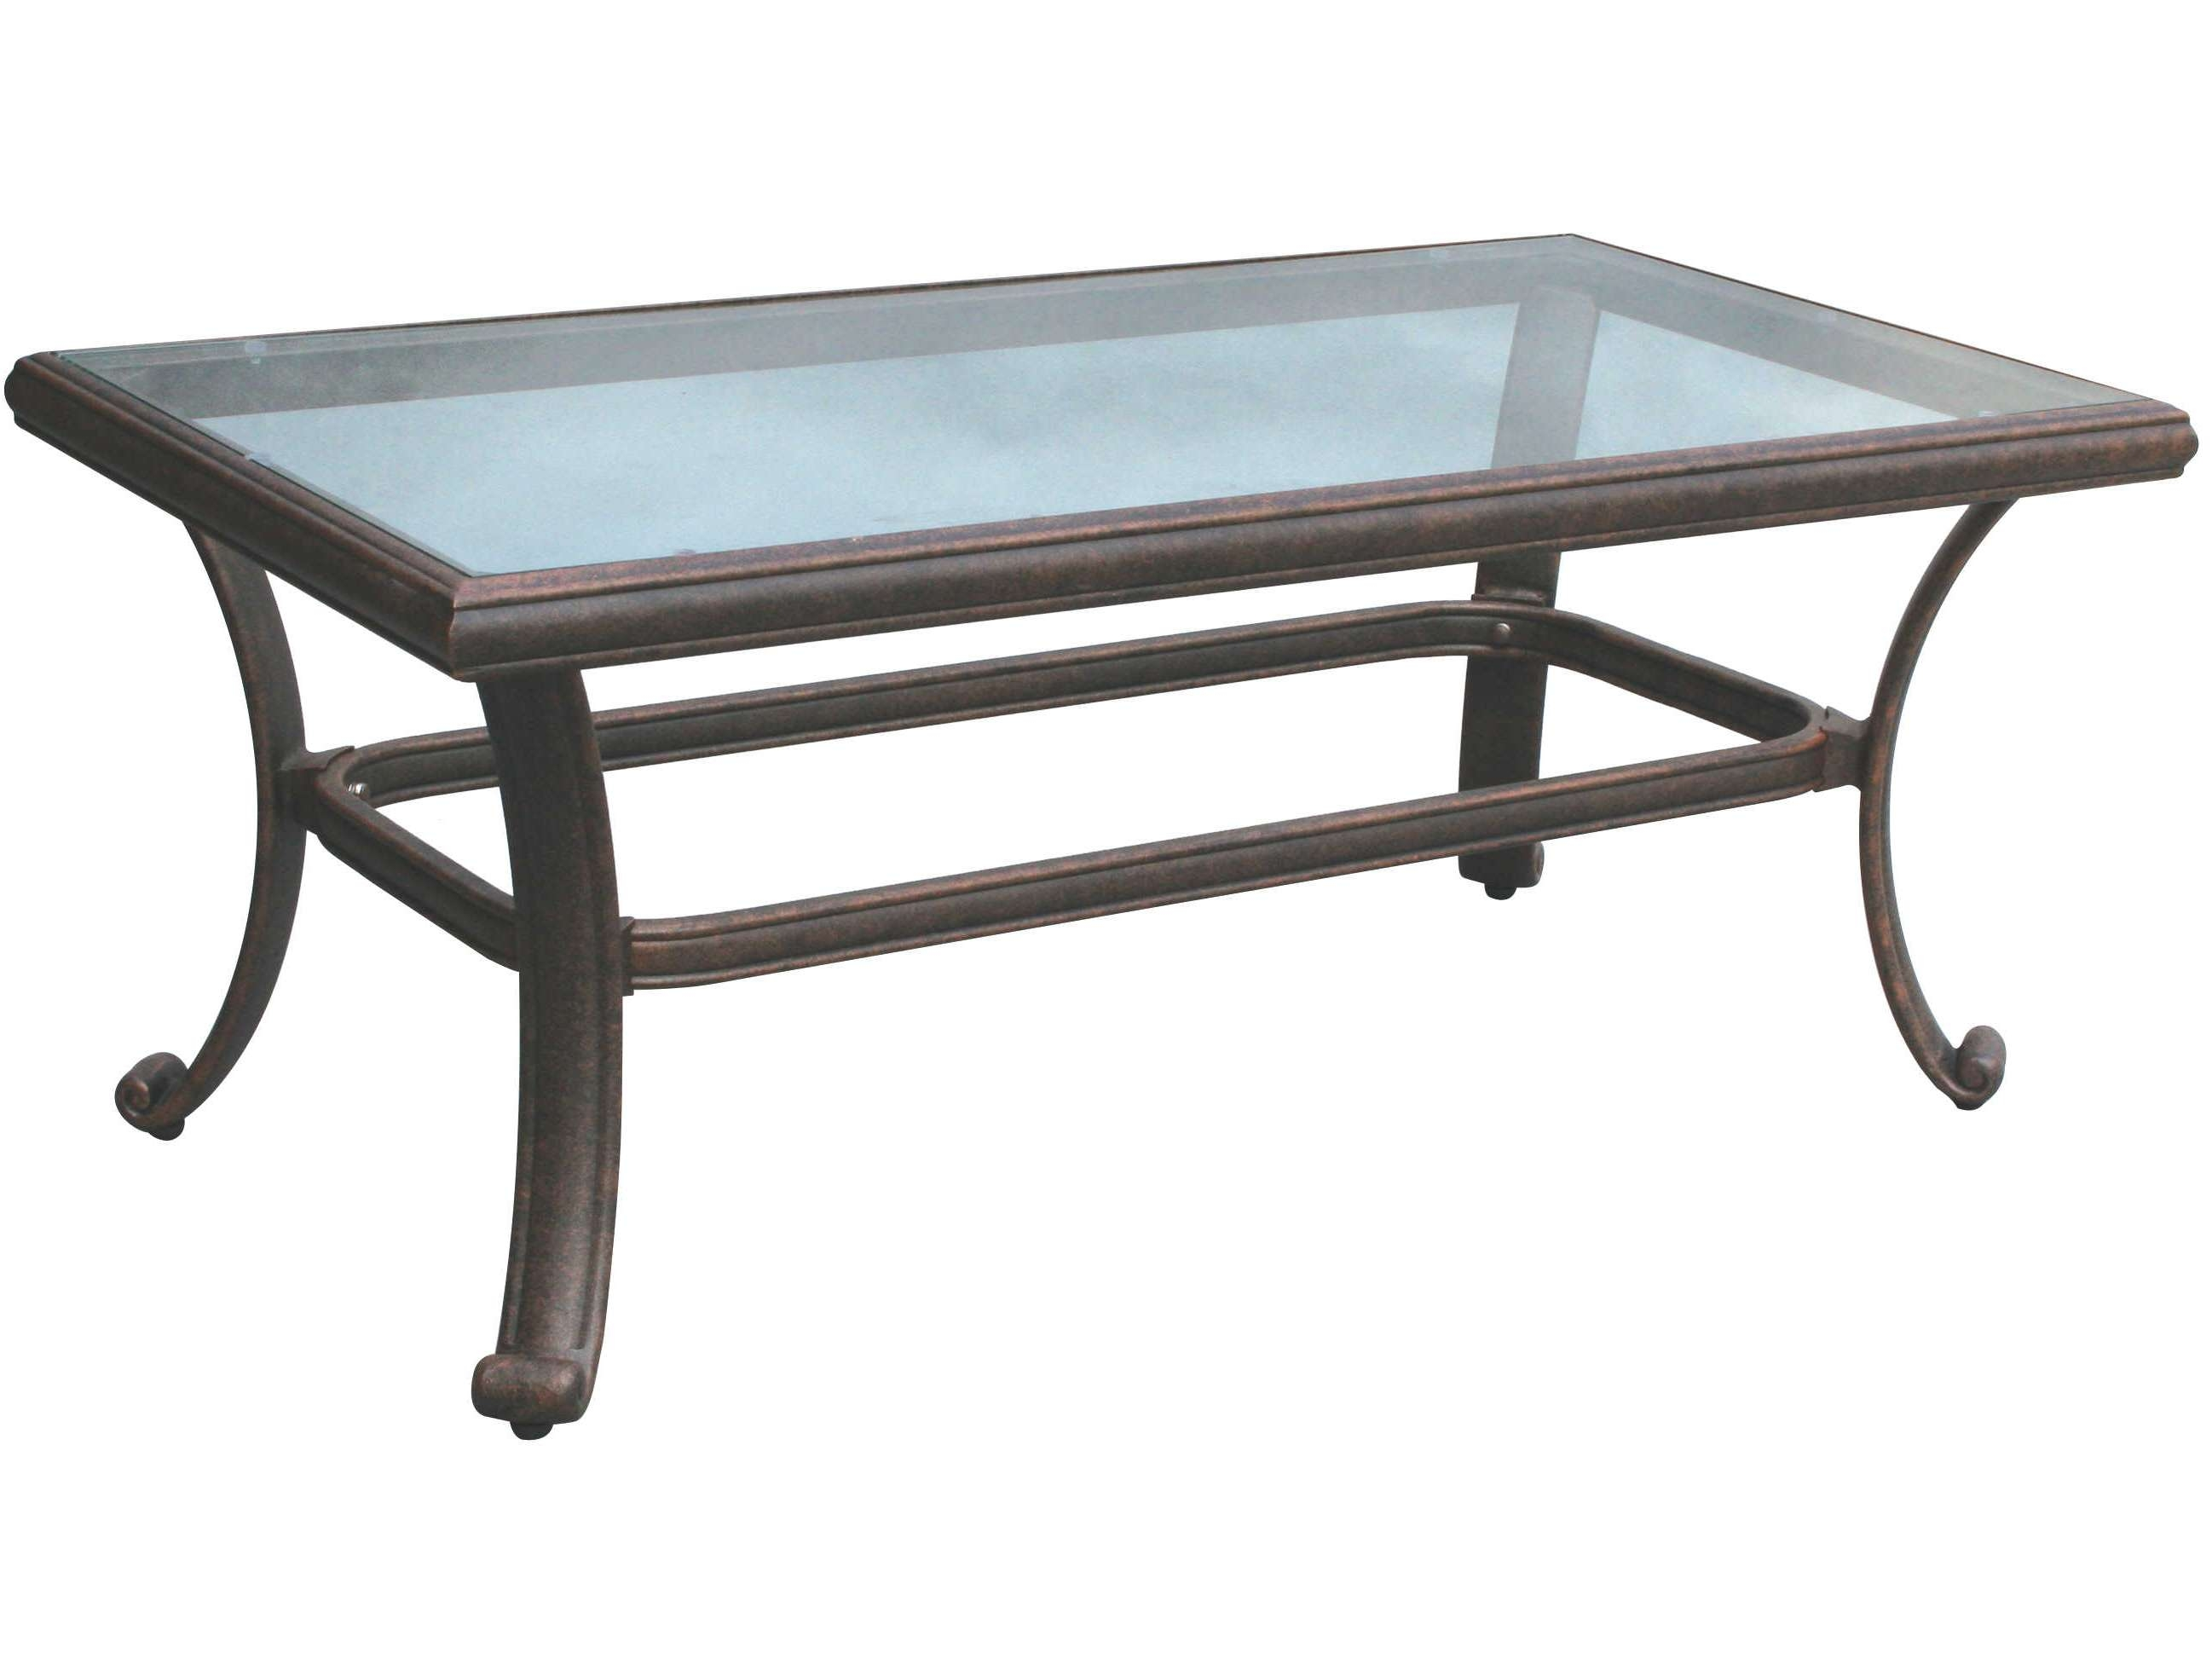 Amazing Of Patio Coffee Tables Darlee Outdoor Living Glass Top In Most Up To Date Vintage Glass Top Coffee Tables (View 19 of 20)